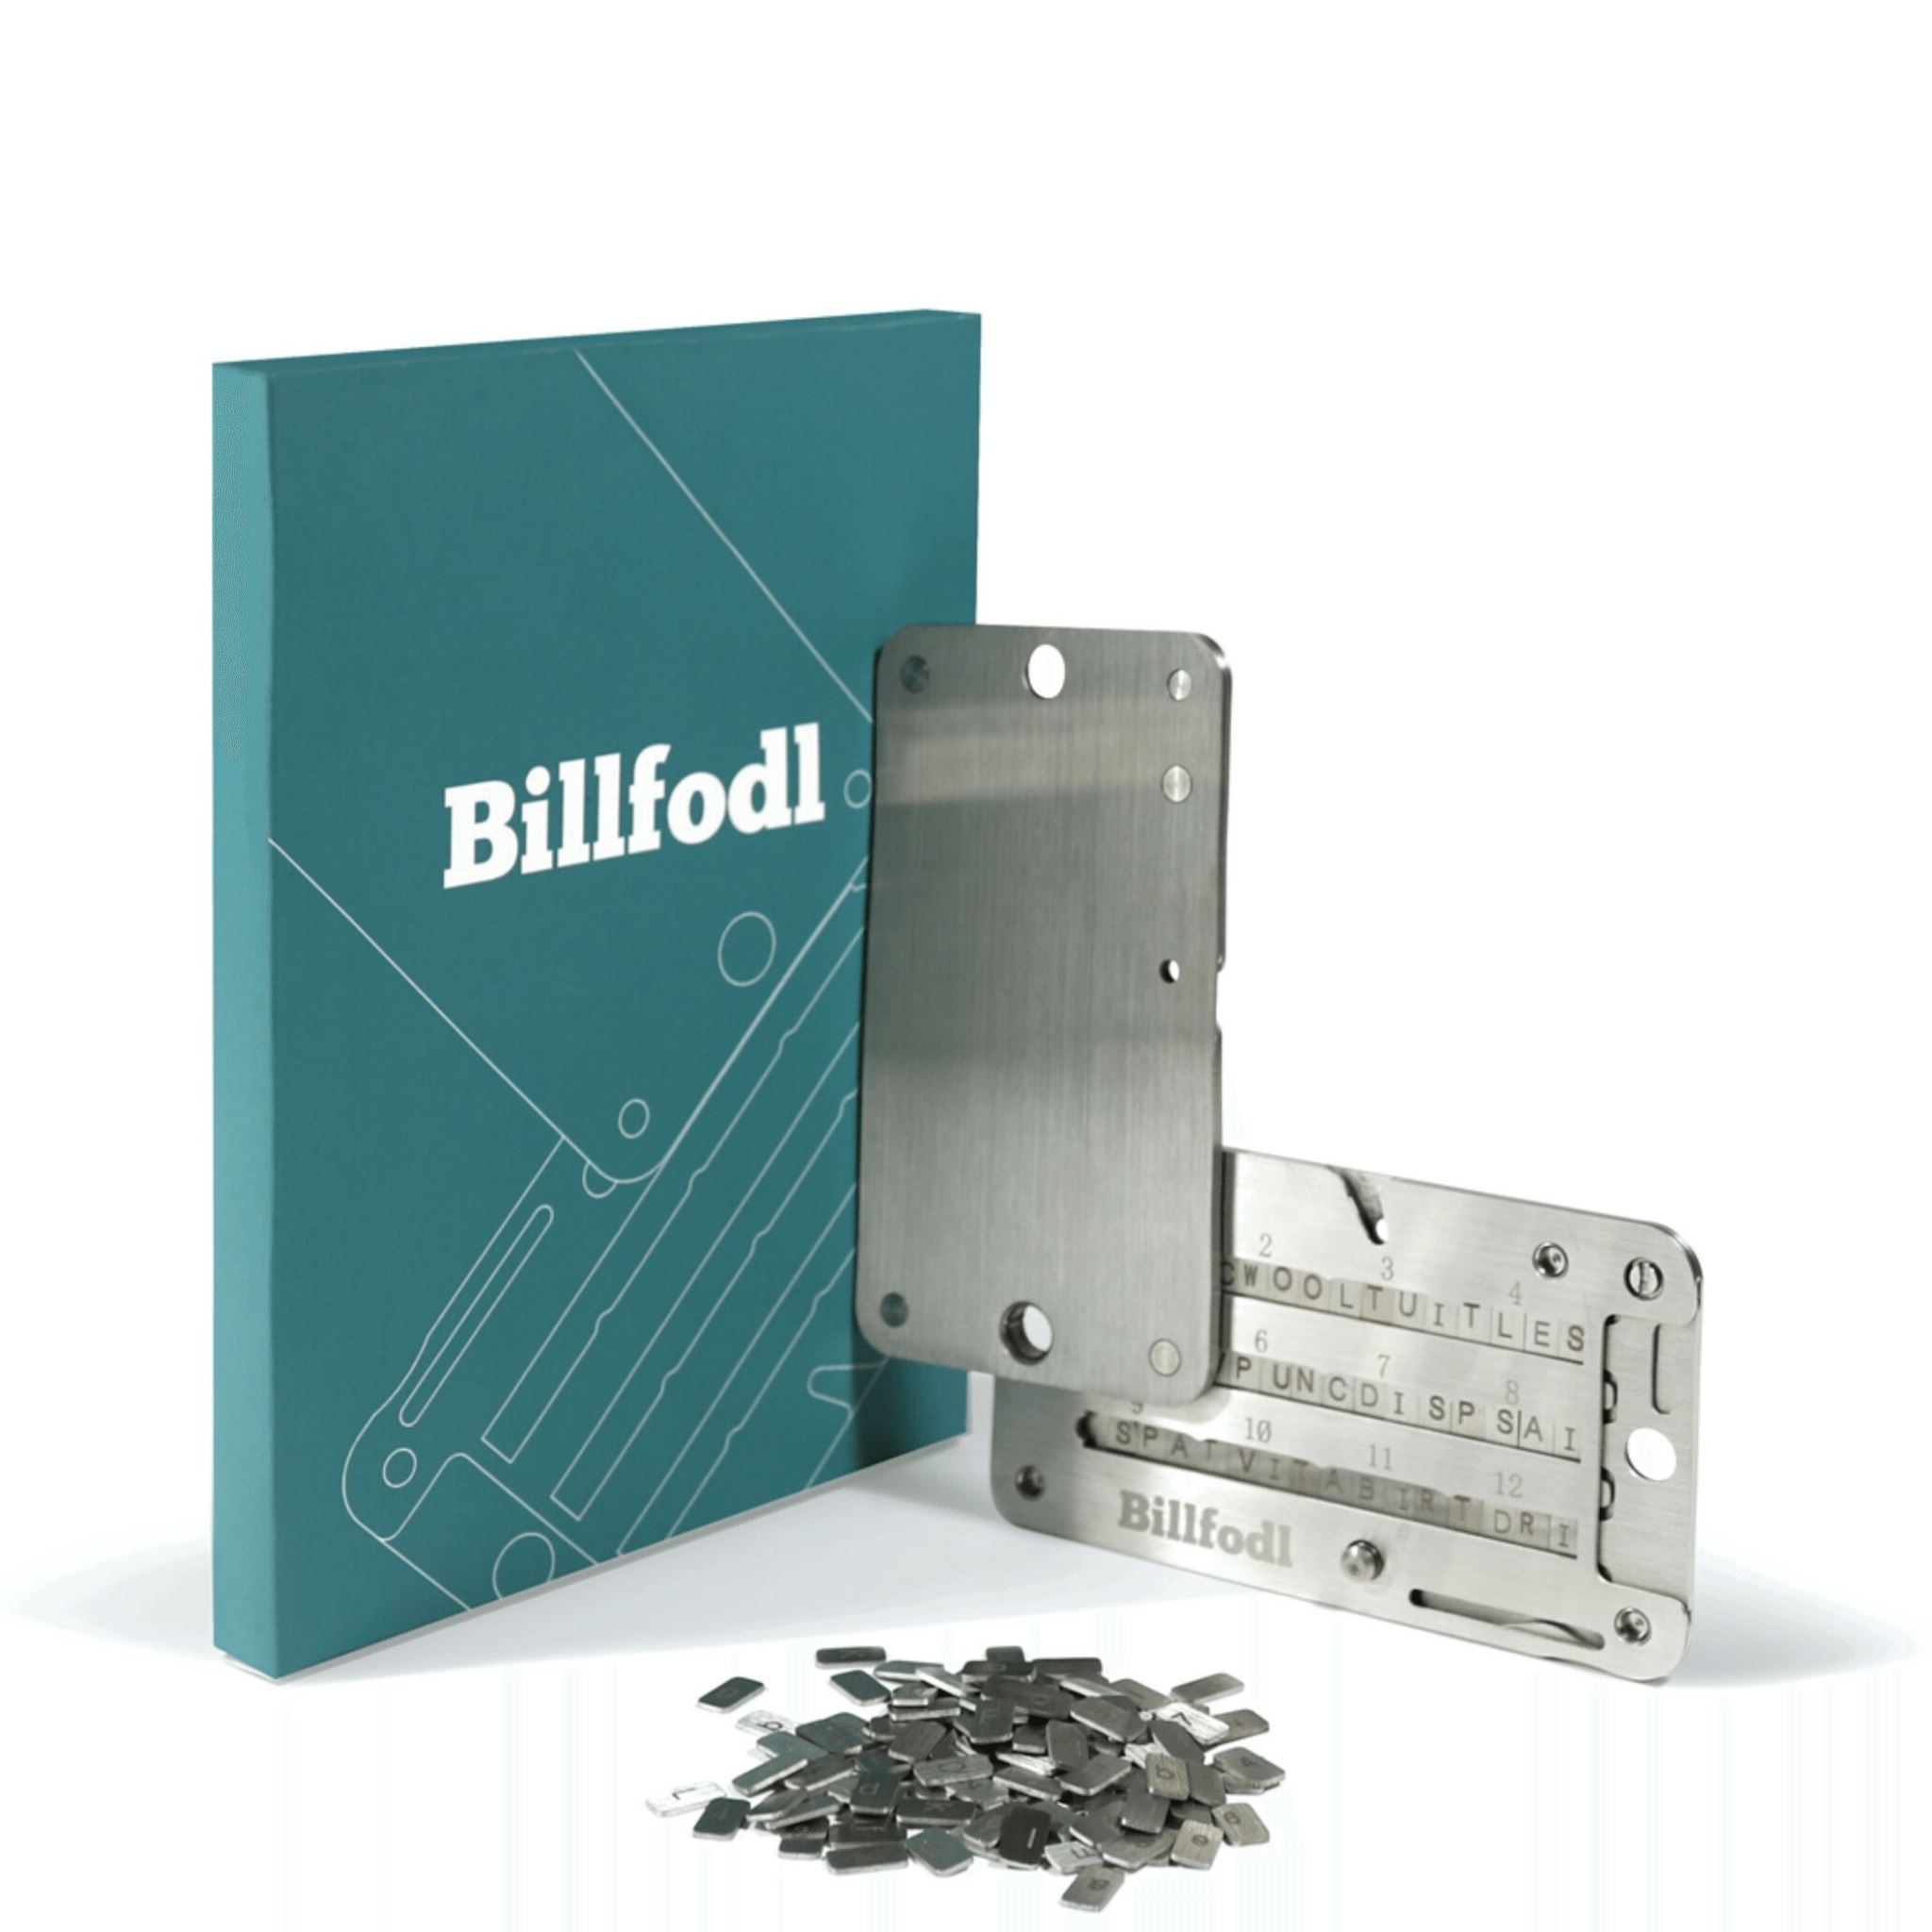 Billfodl Box